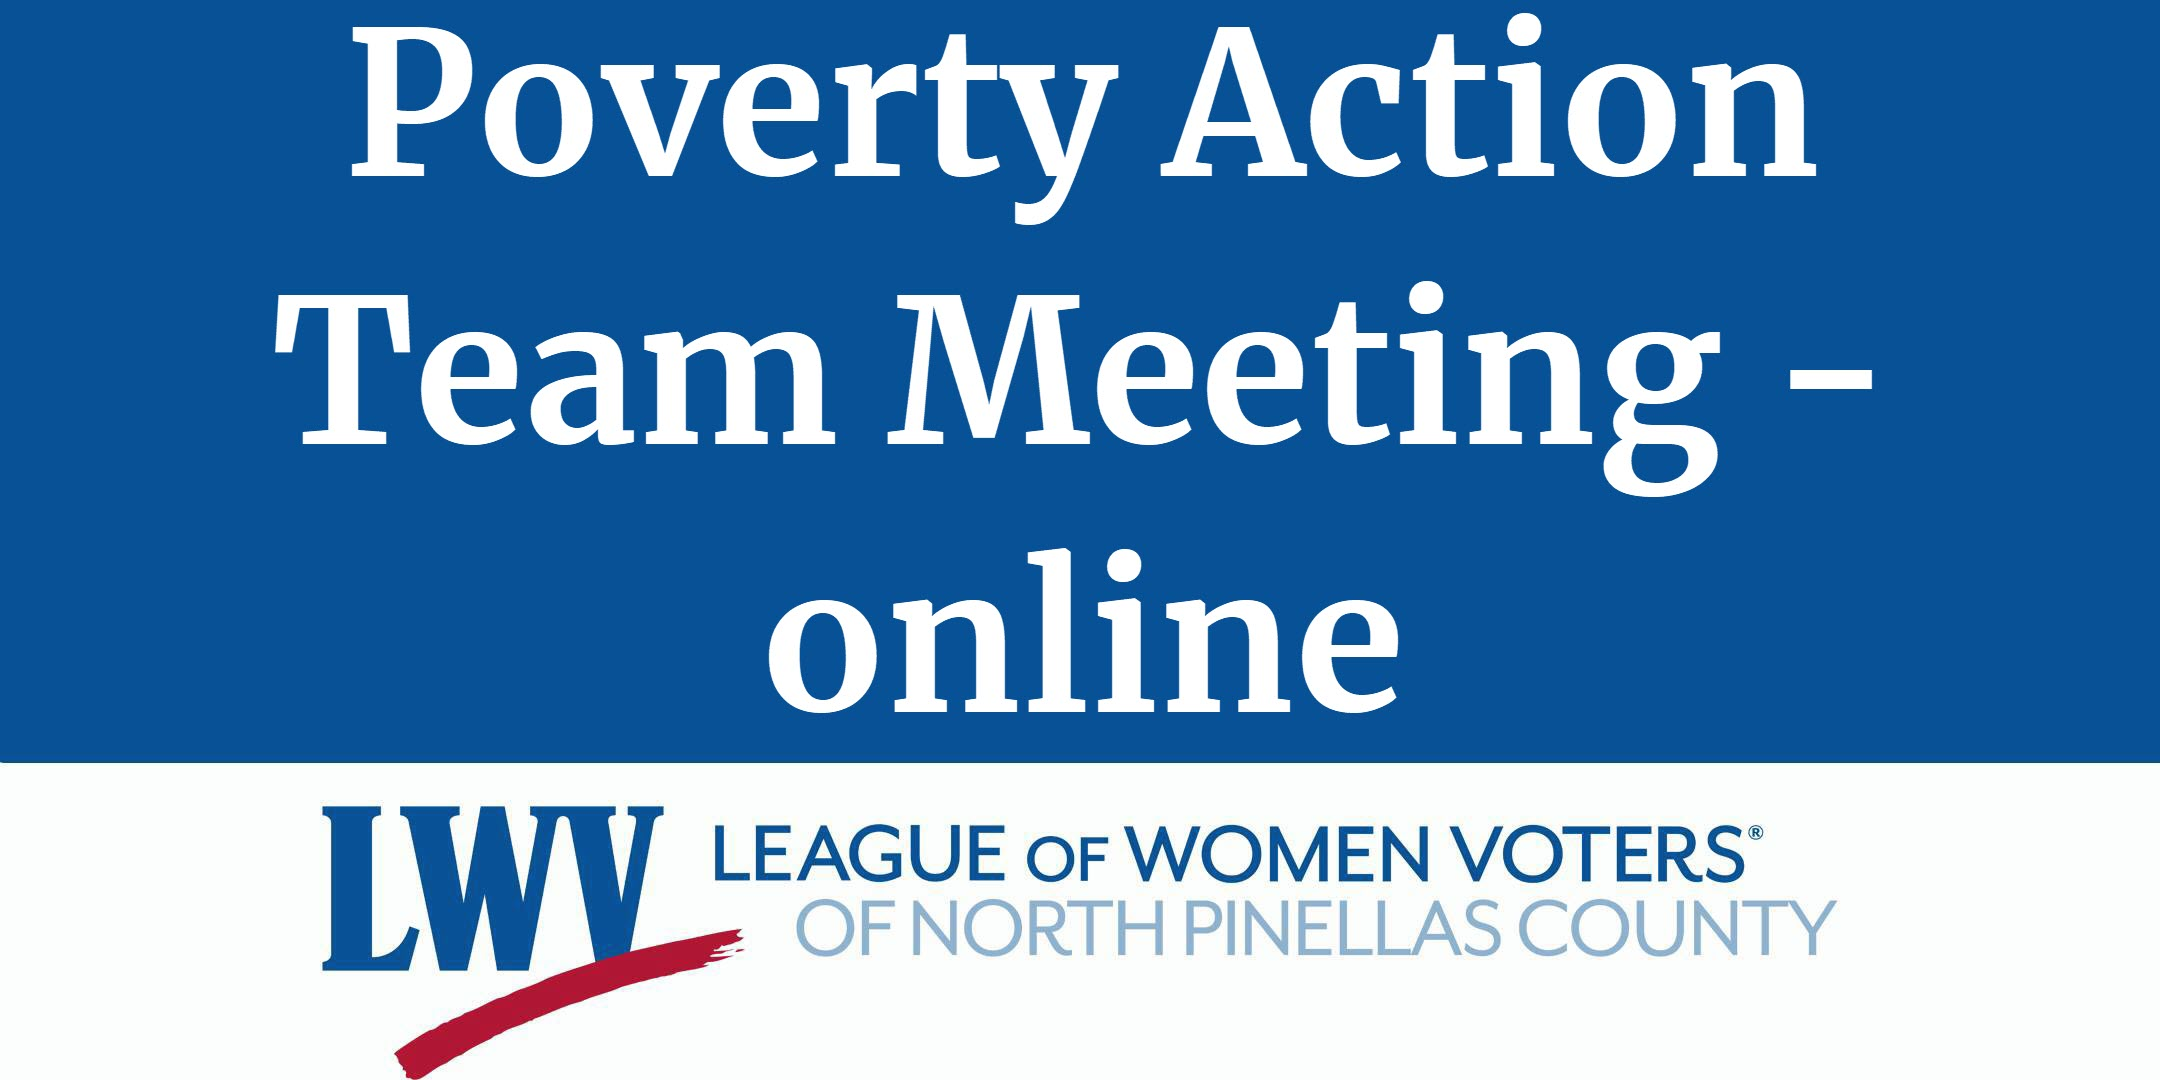 LWV Florida Poverty Action Team Meeting